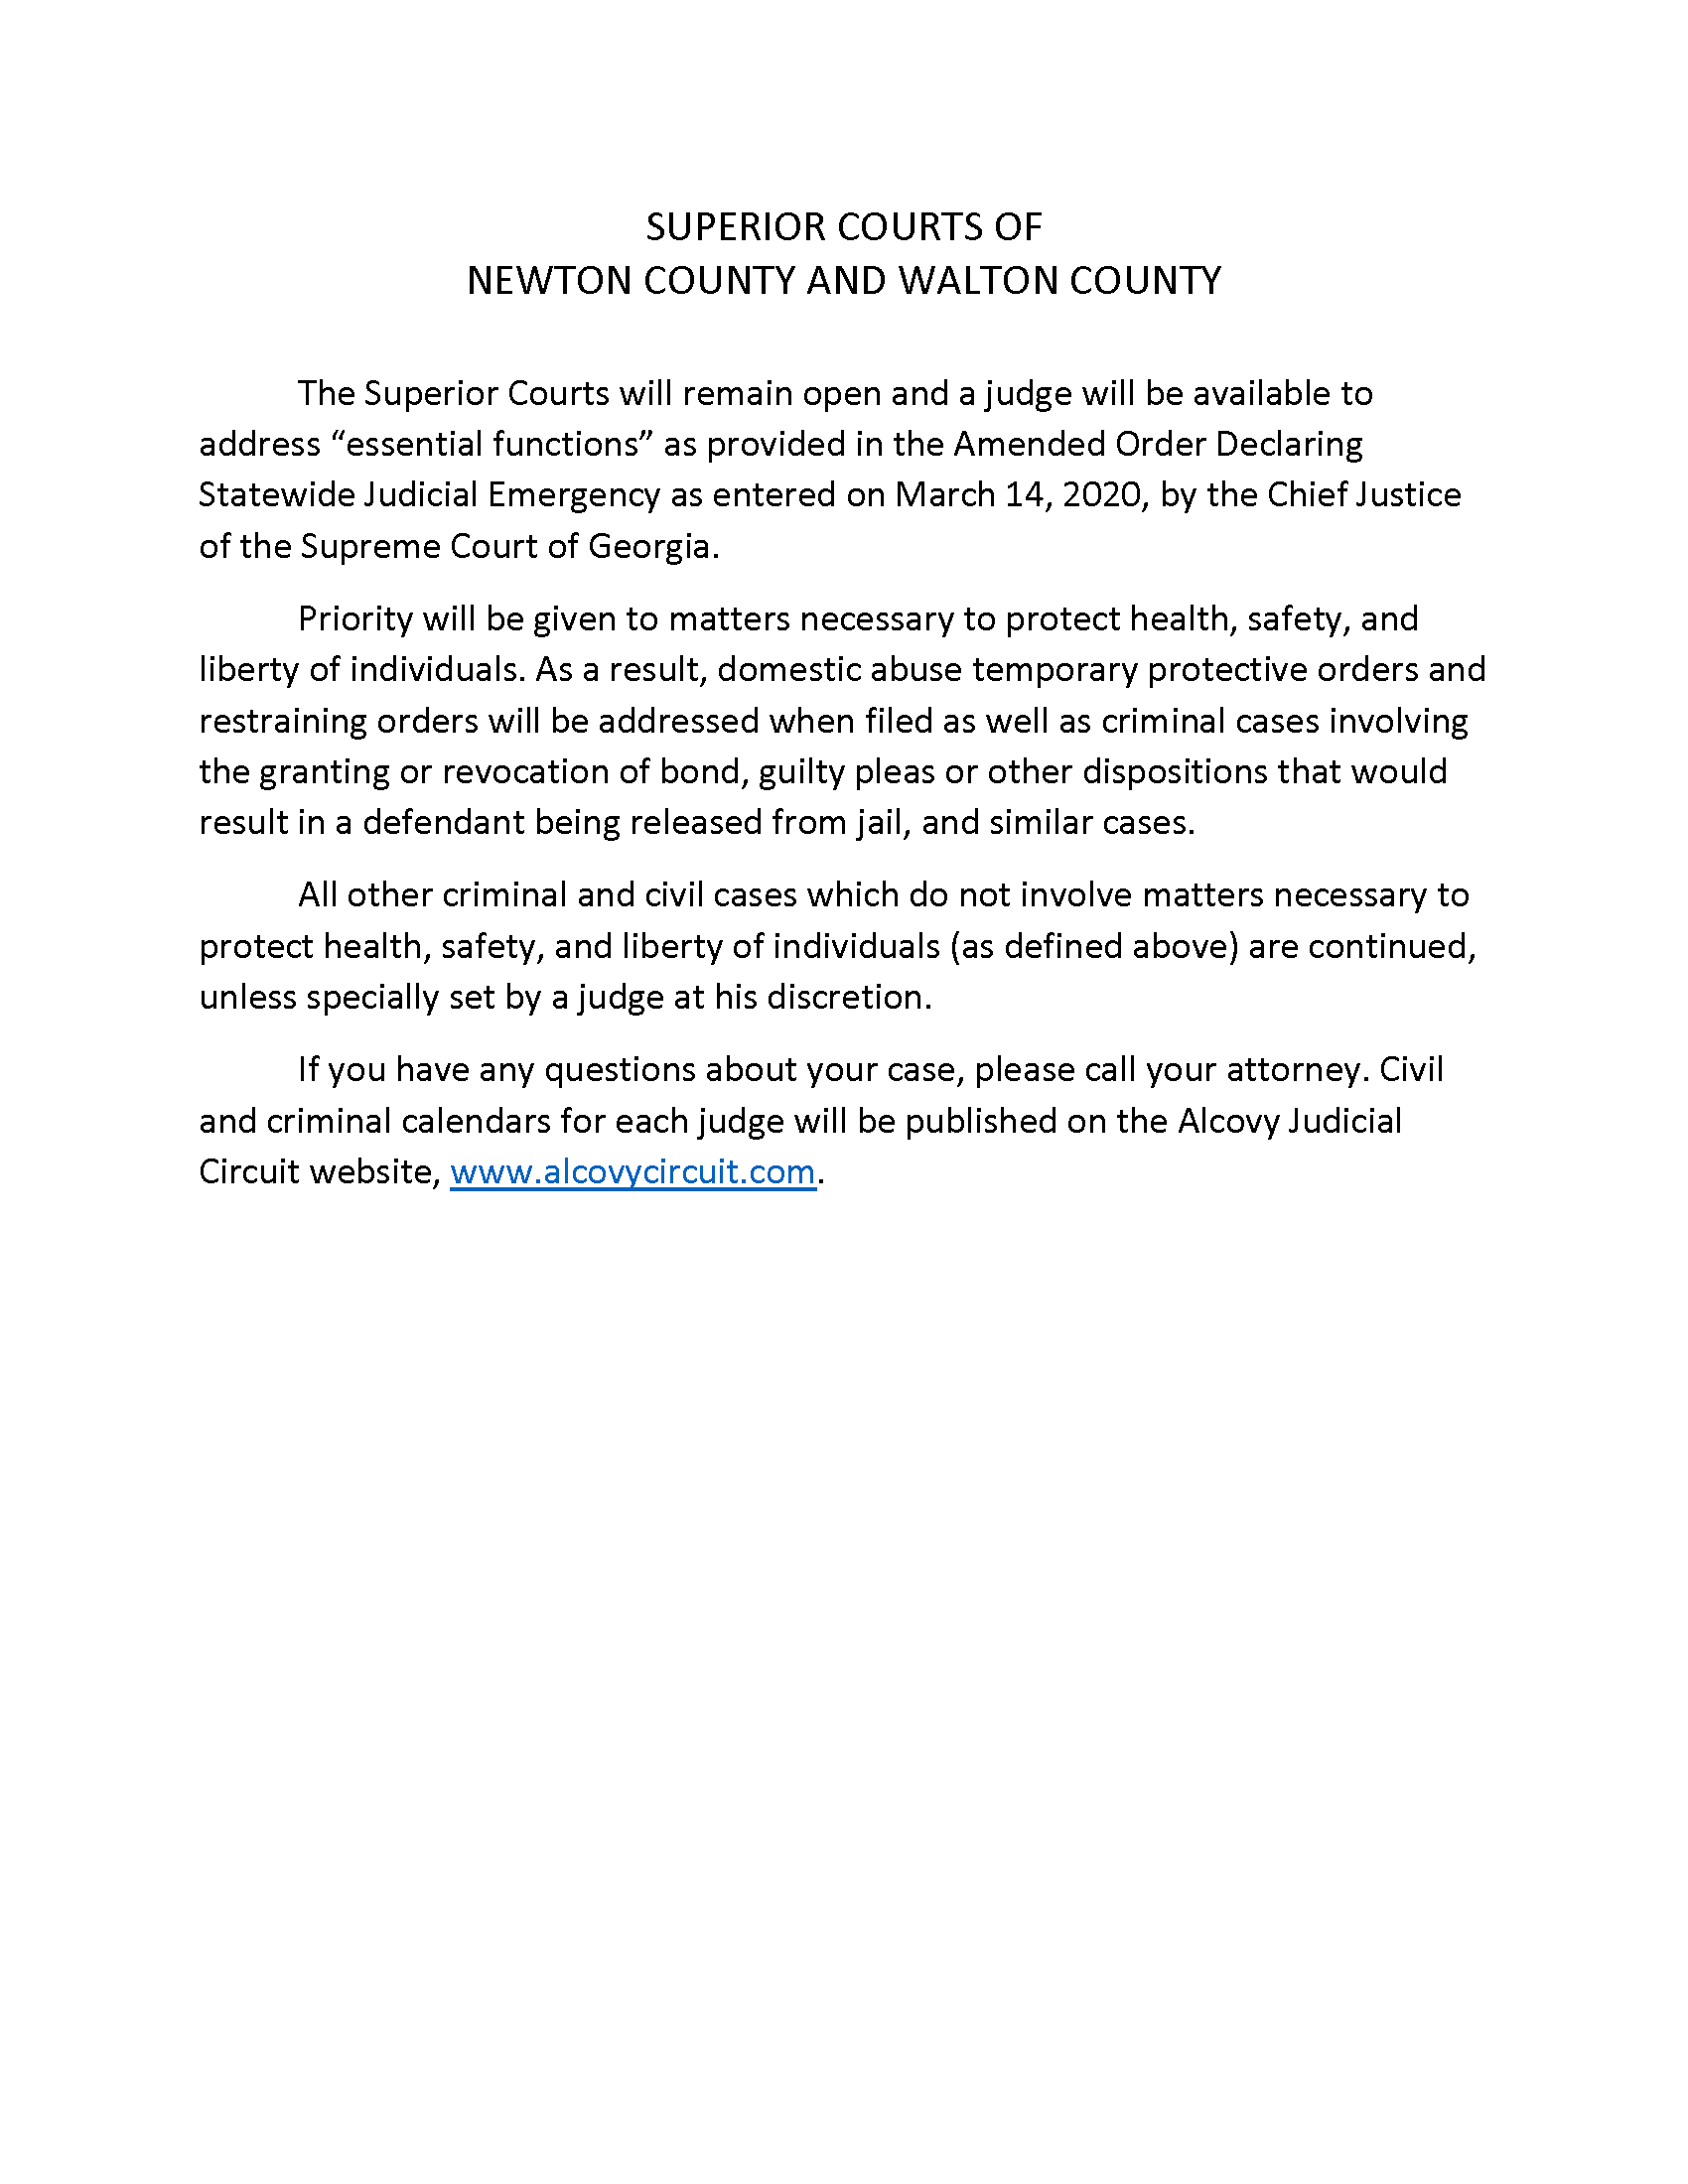 SUPERIOR COURTS PRESS RELEASE